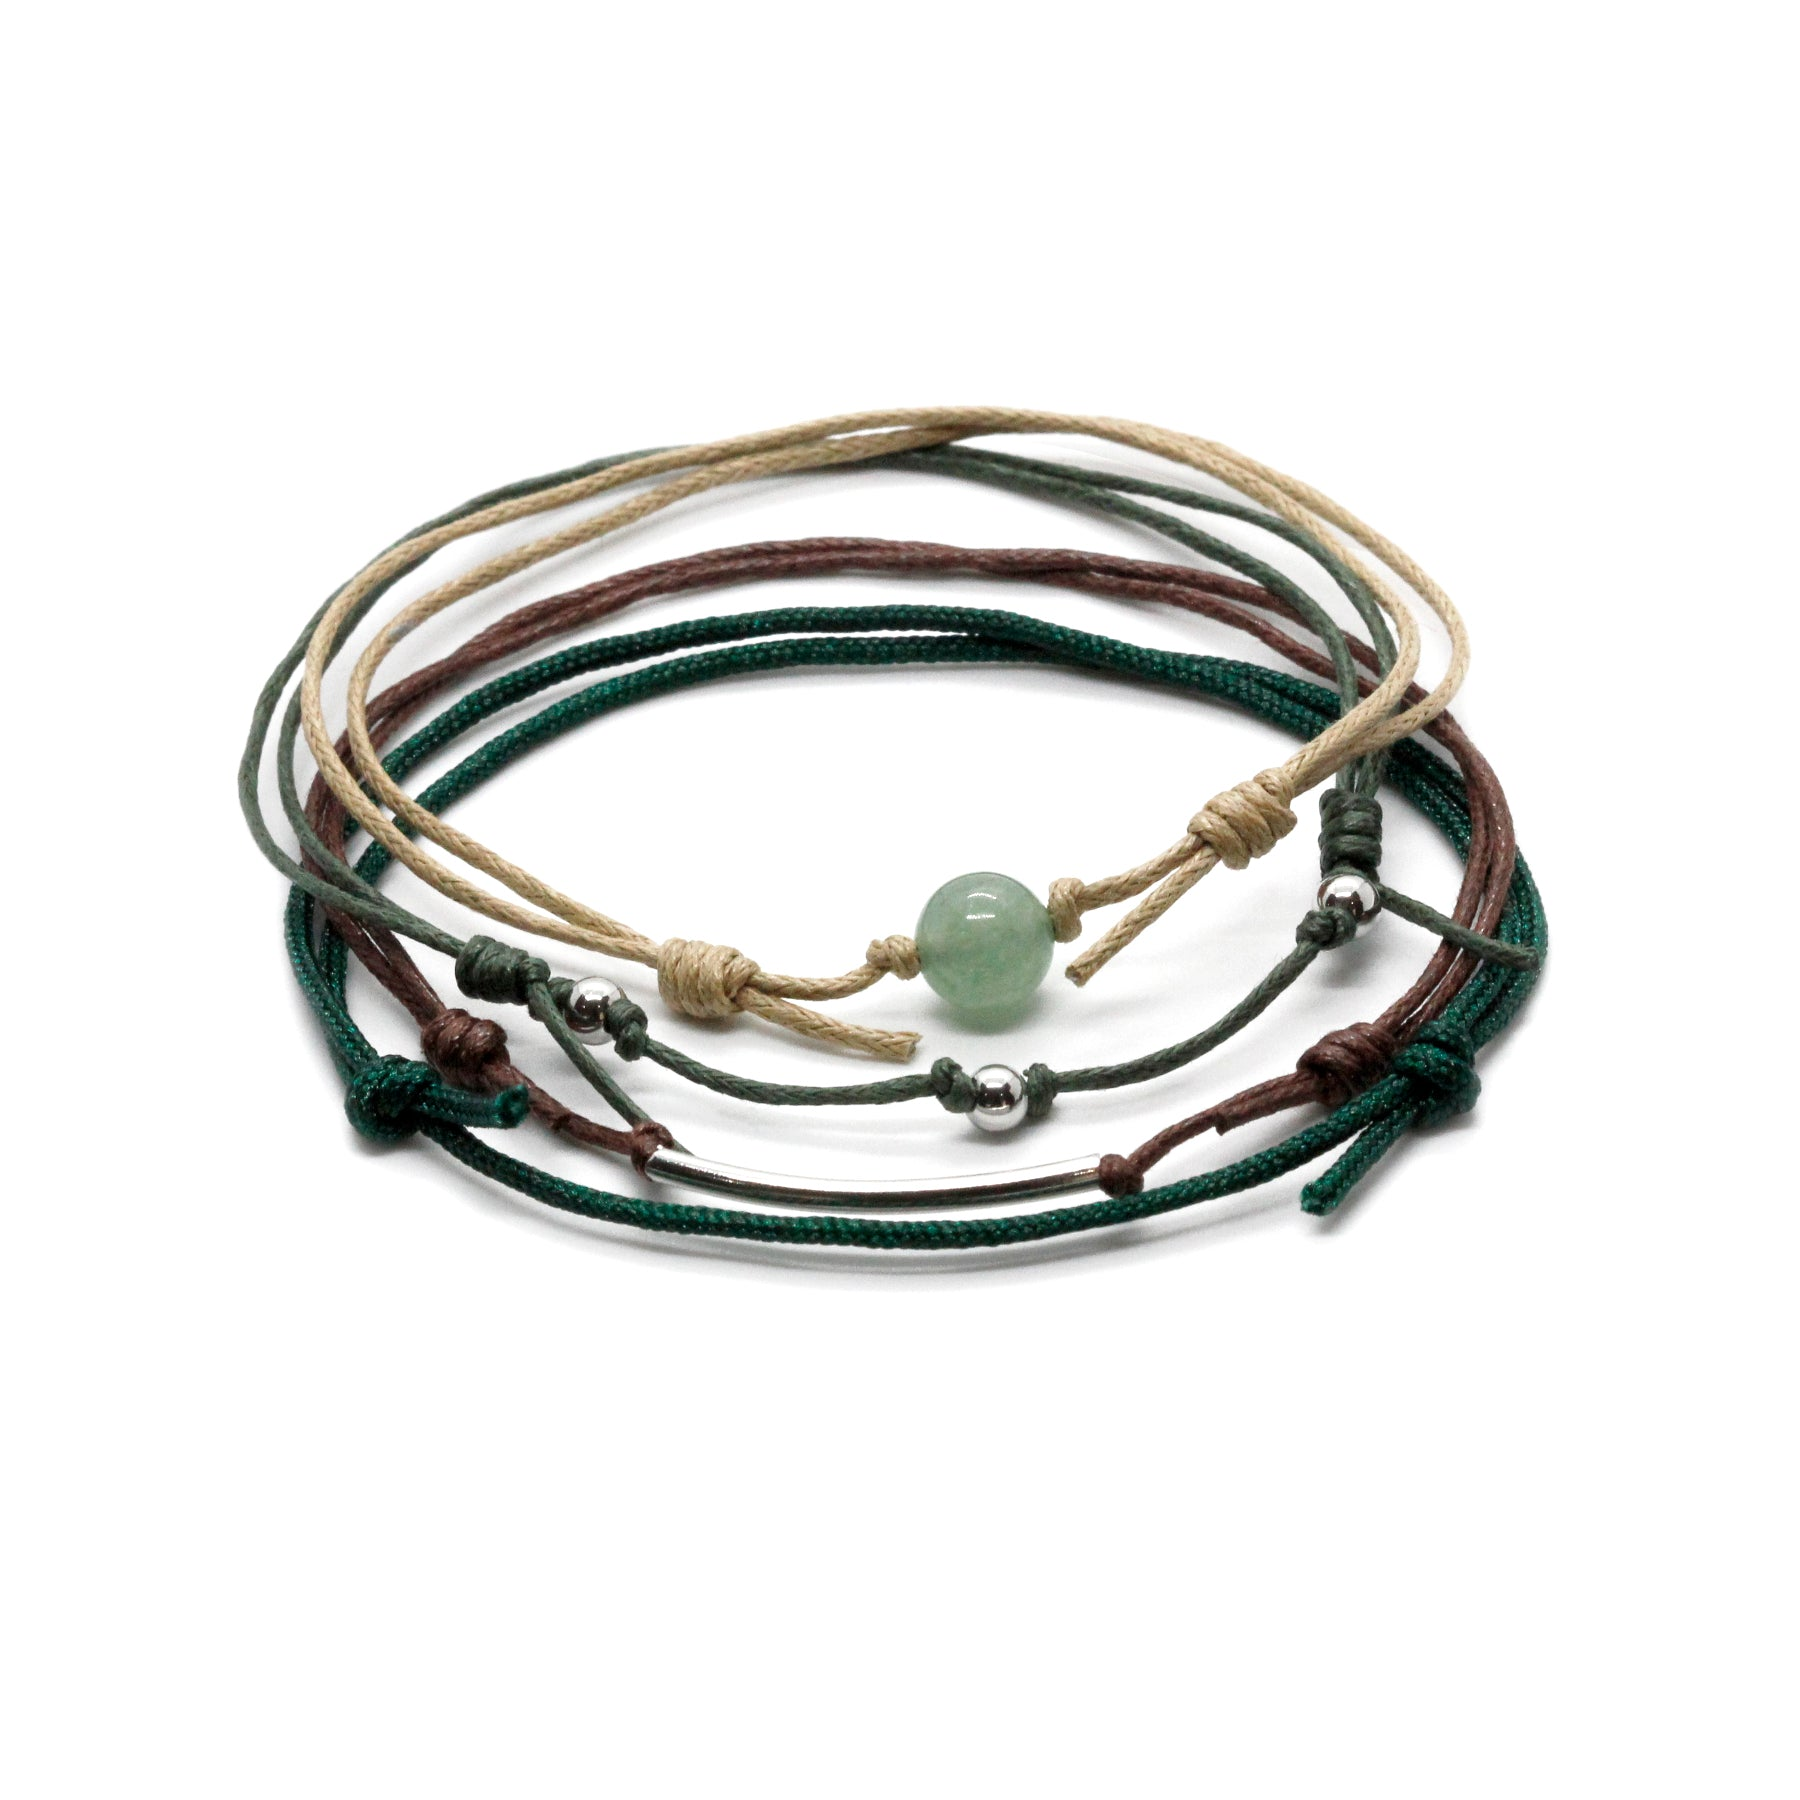 Aventurine Gemstone Anklet - 4 Piece Set | O Yeah Gifts!